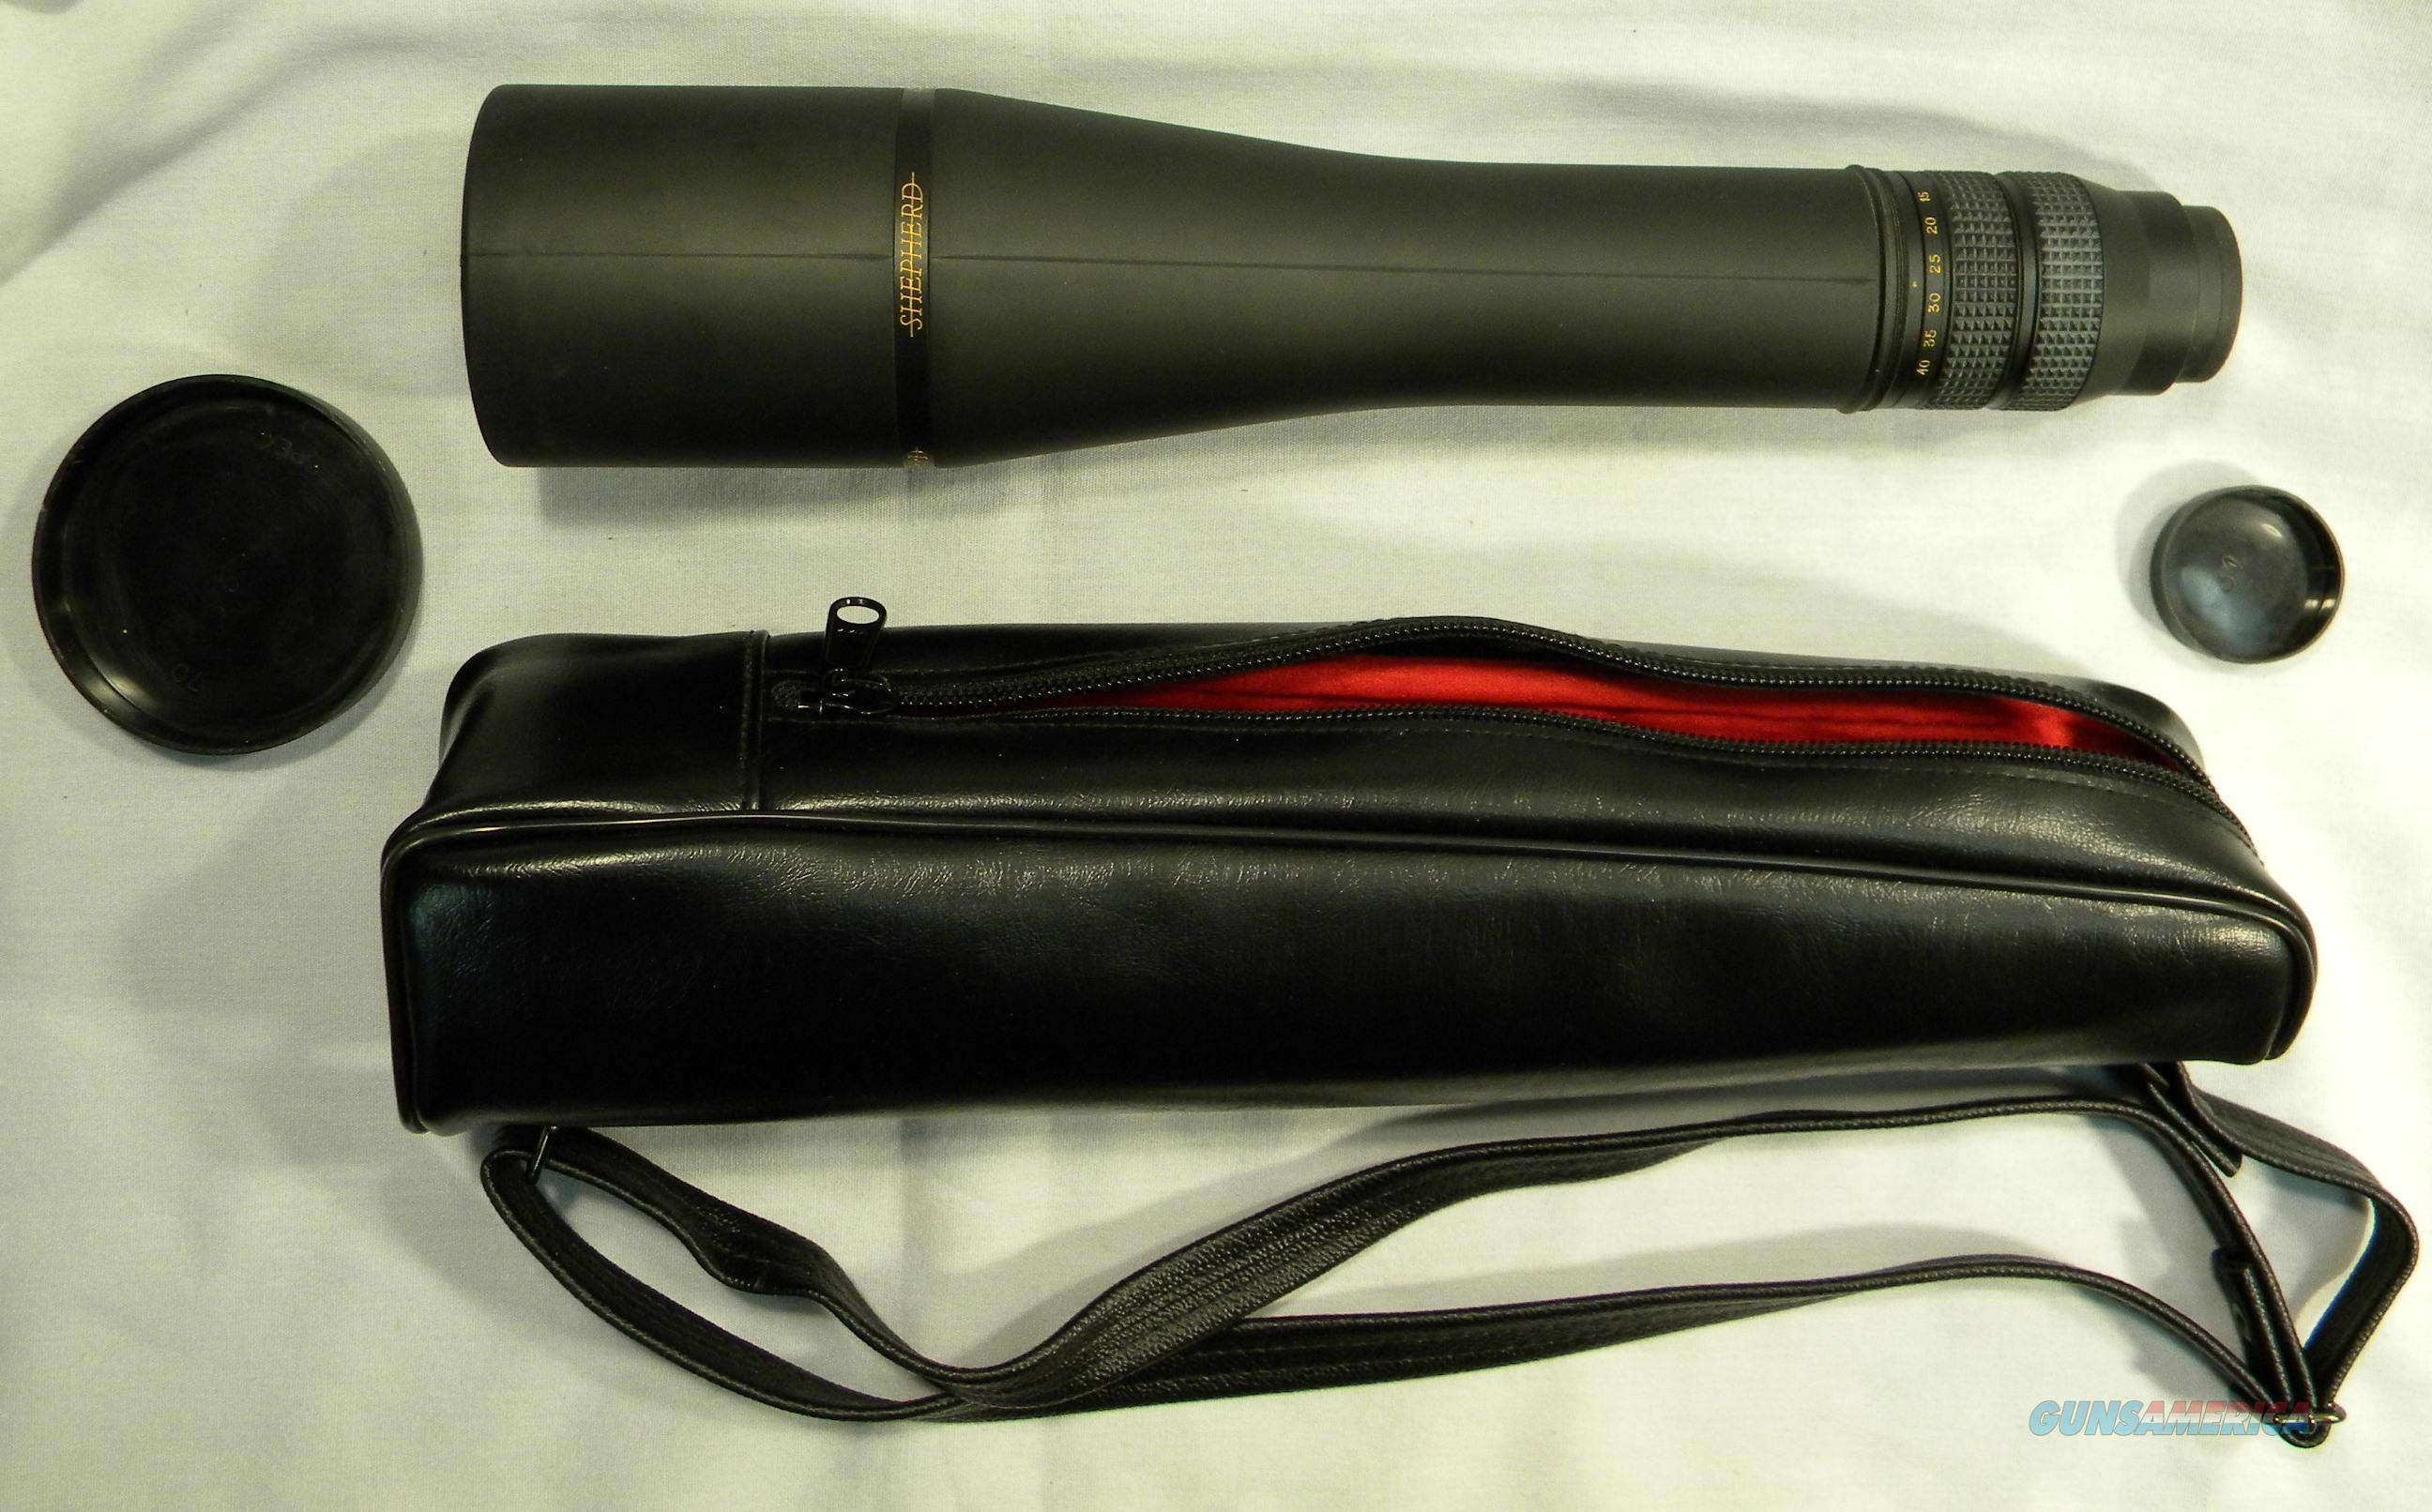 'Shepherd' Brand Spotting Scope, 15-40x60mm, Waterproof, As-New  Non-Guns > Scopes/Mounts/Rings & Optics > Non-Scope Optics > Monoculars